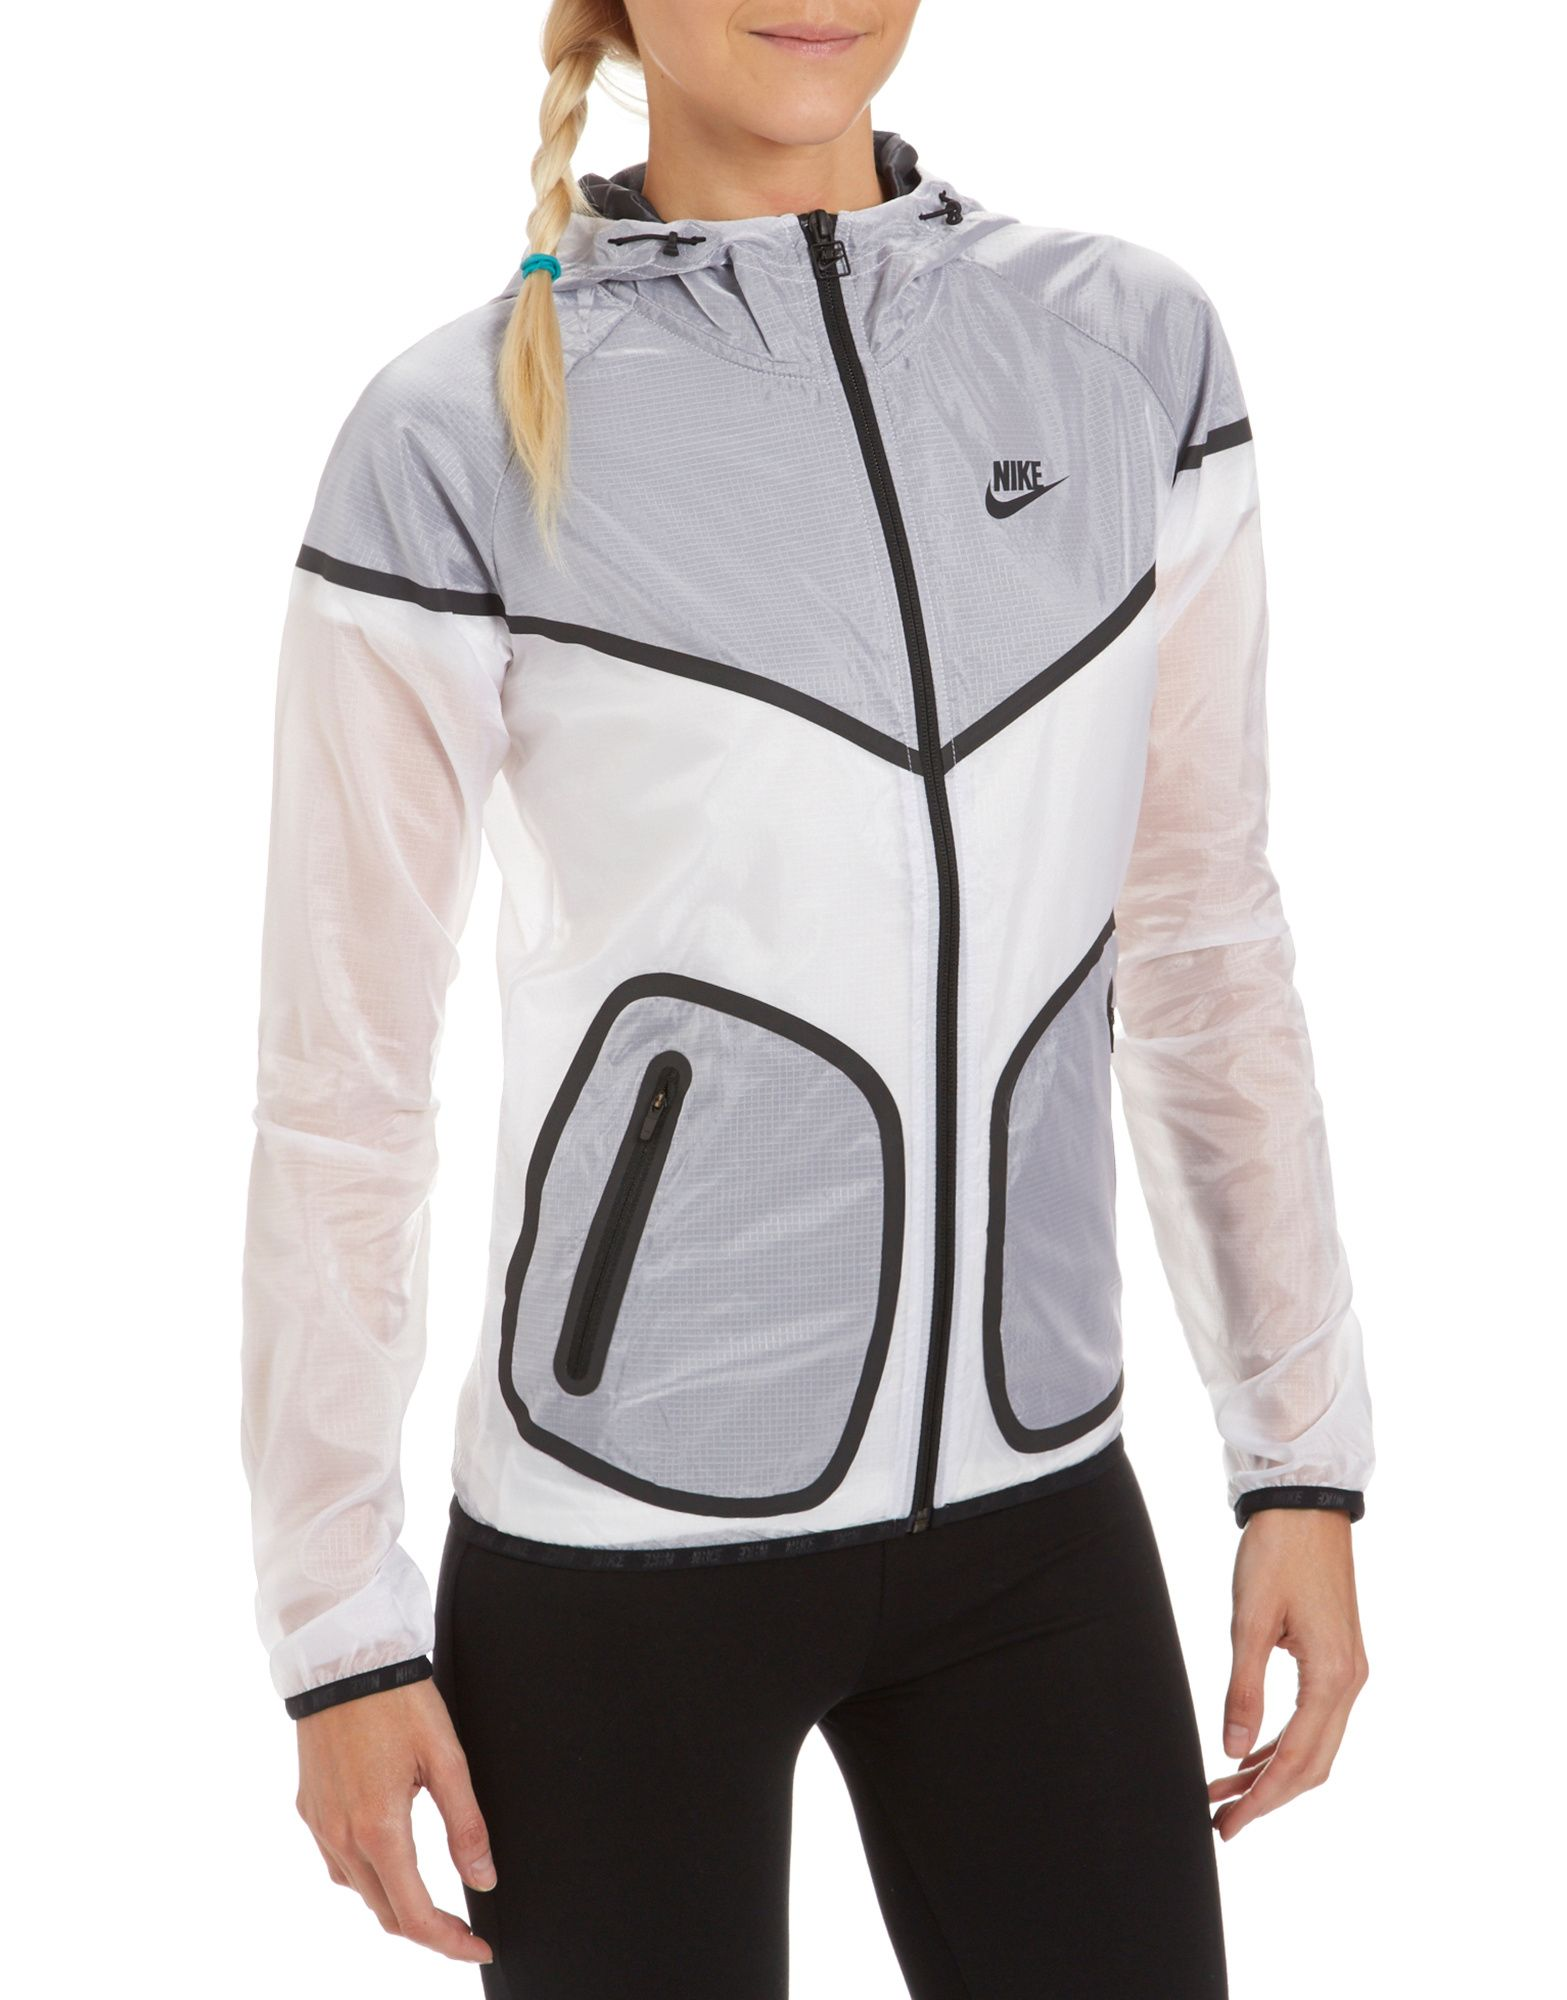 Nike Tech Hyperfuse Windrunner Jacket